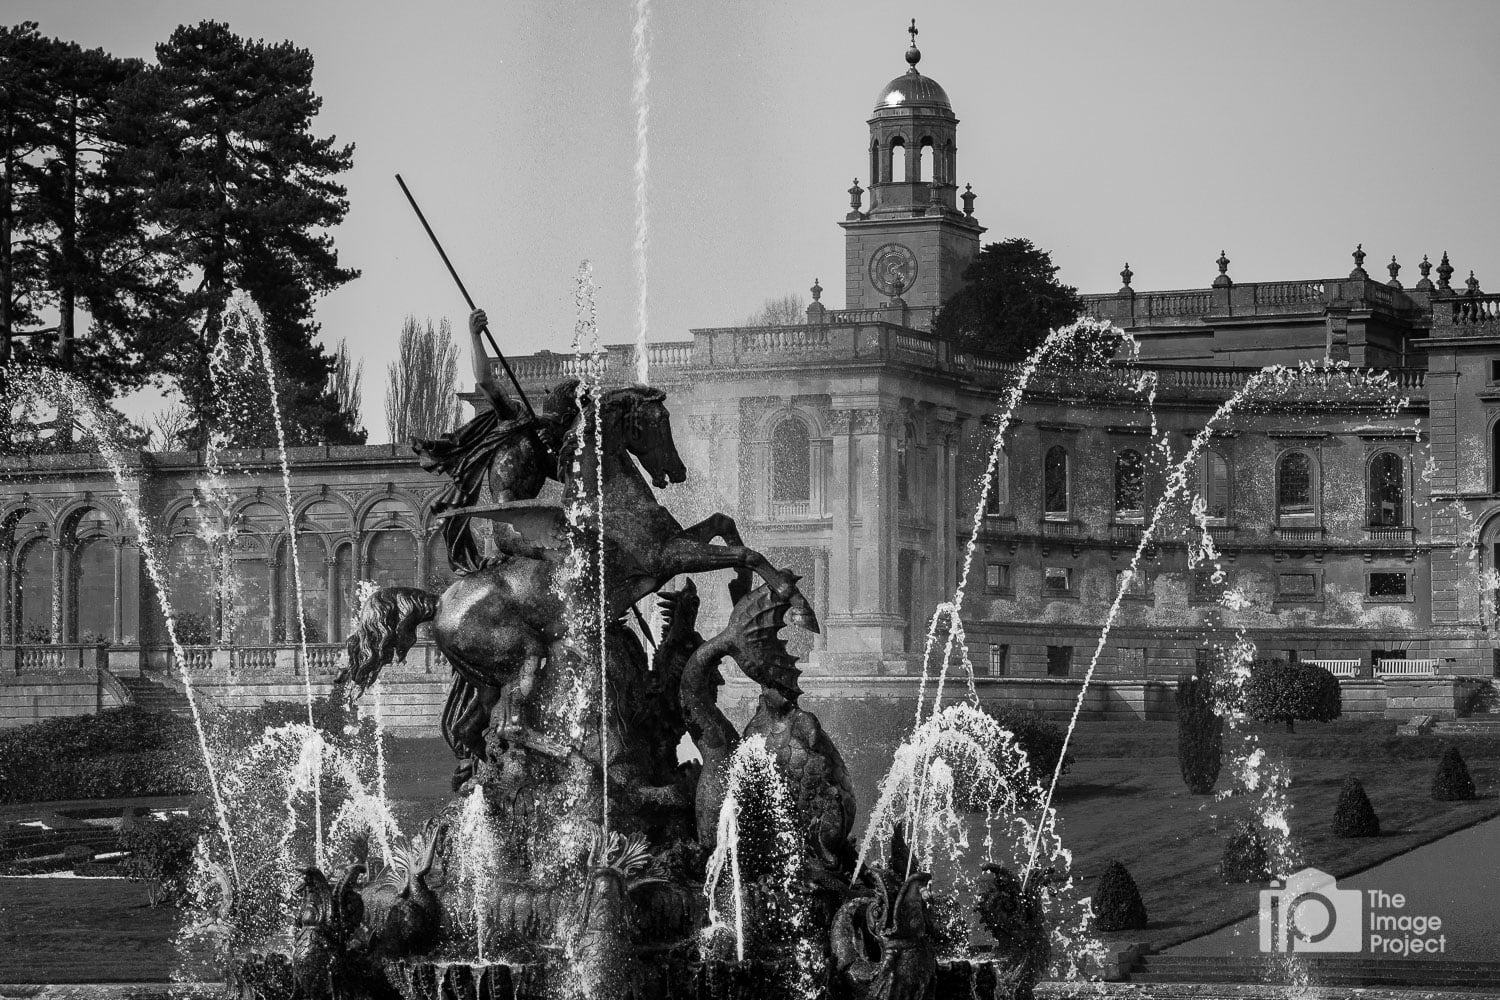 Fountains in full flow at Witley Court, location for photo workshop mansion ruins by Nathan Barry